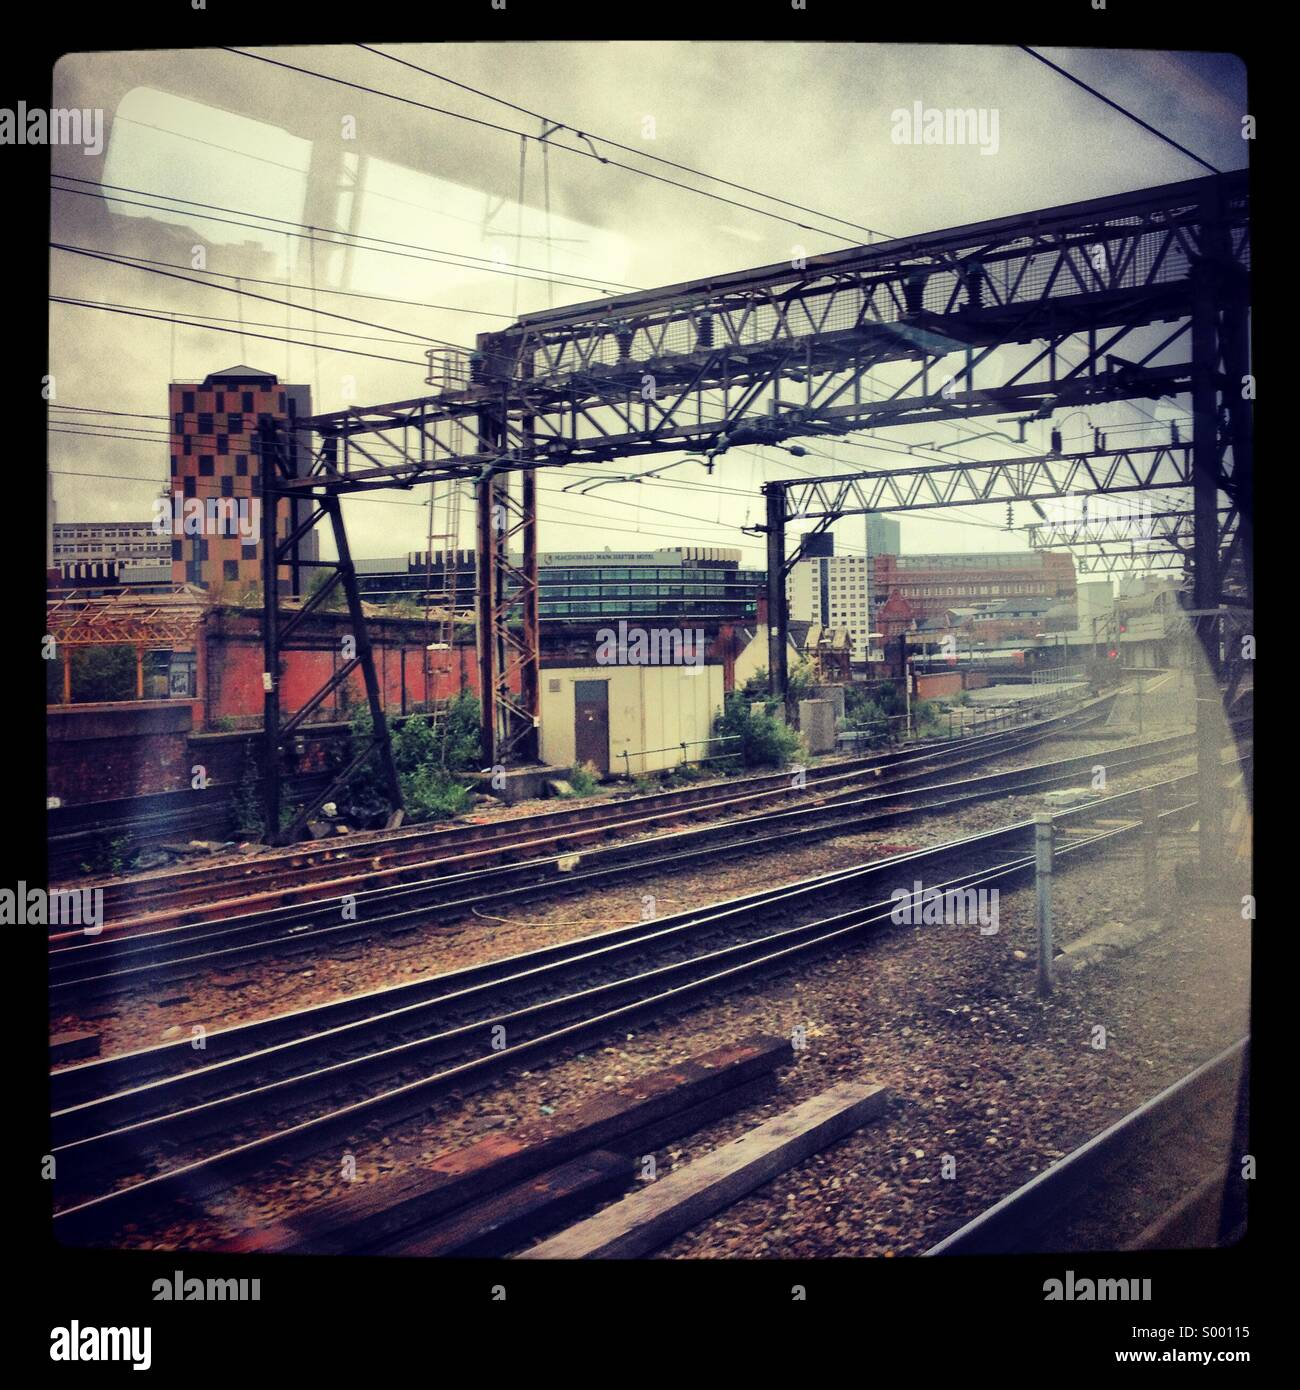 Manchester railway lines - Stock Image